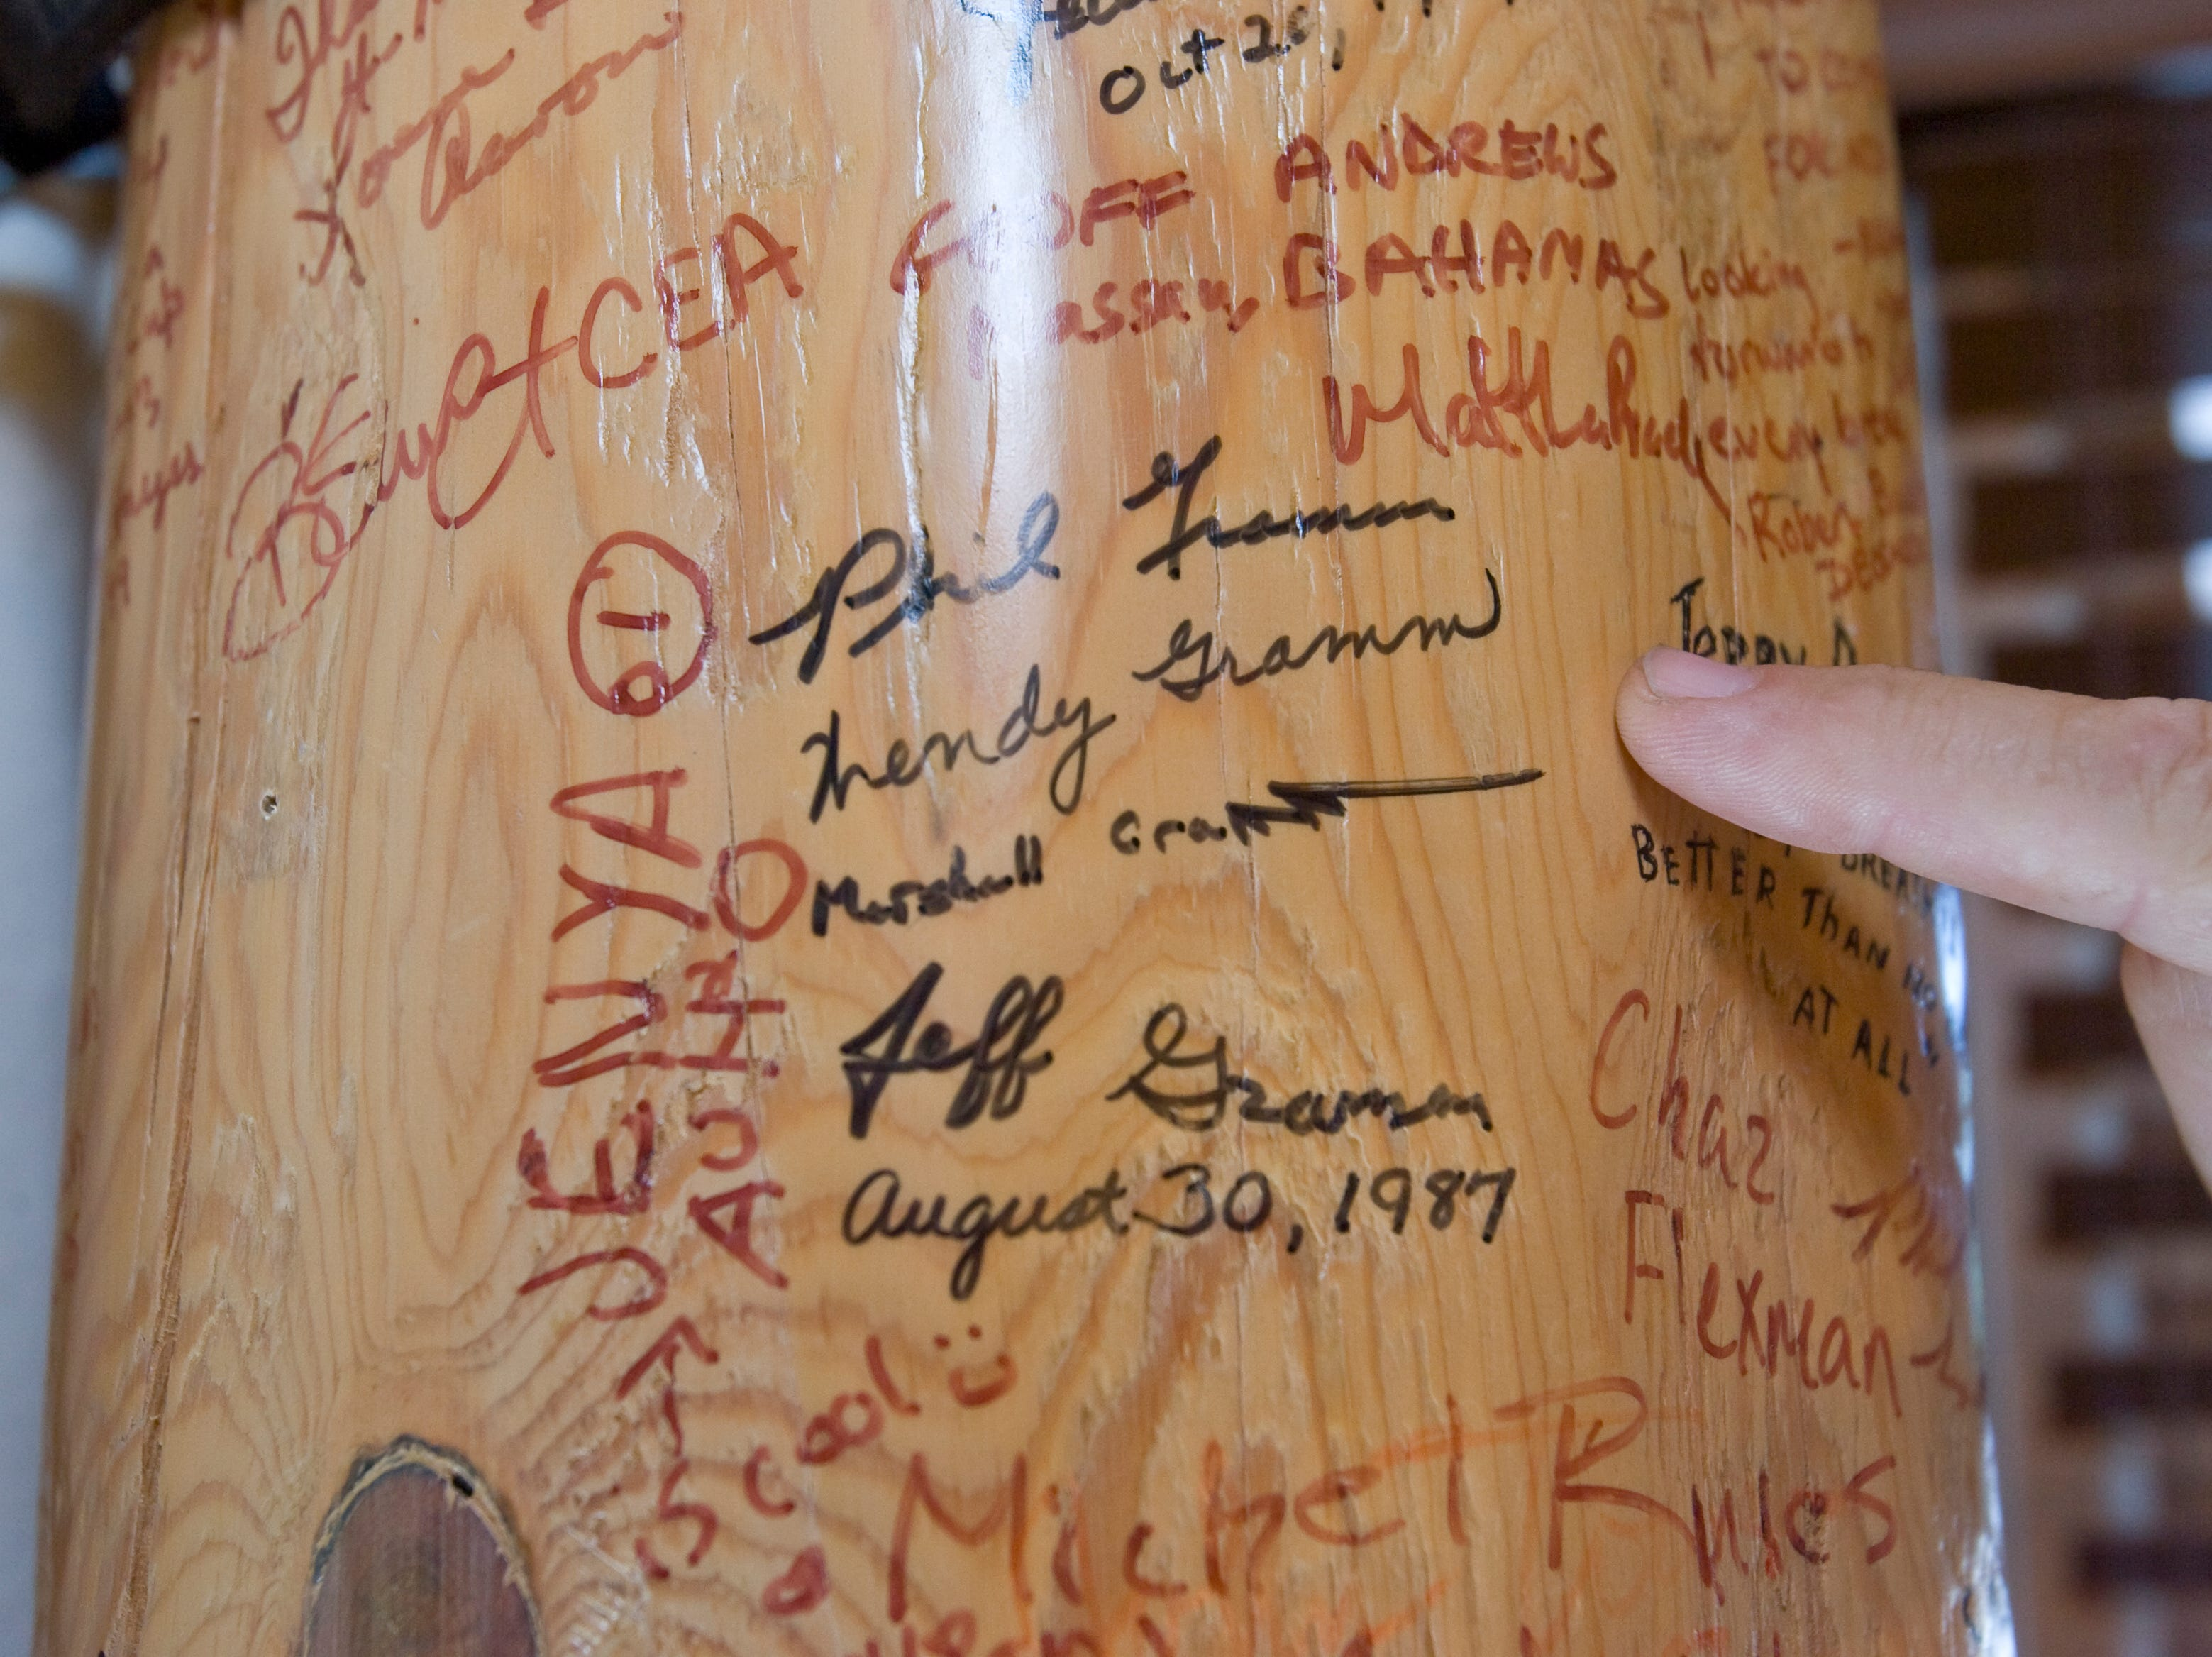 Auctioneer Stewart Larsen points to a wooden pole in the swimming pool changing room at the former home of  Sen. John and Cindy McCain in 2008. Guests who visited the home signed their names and often left quotes and comments.